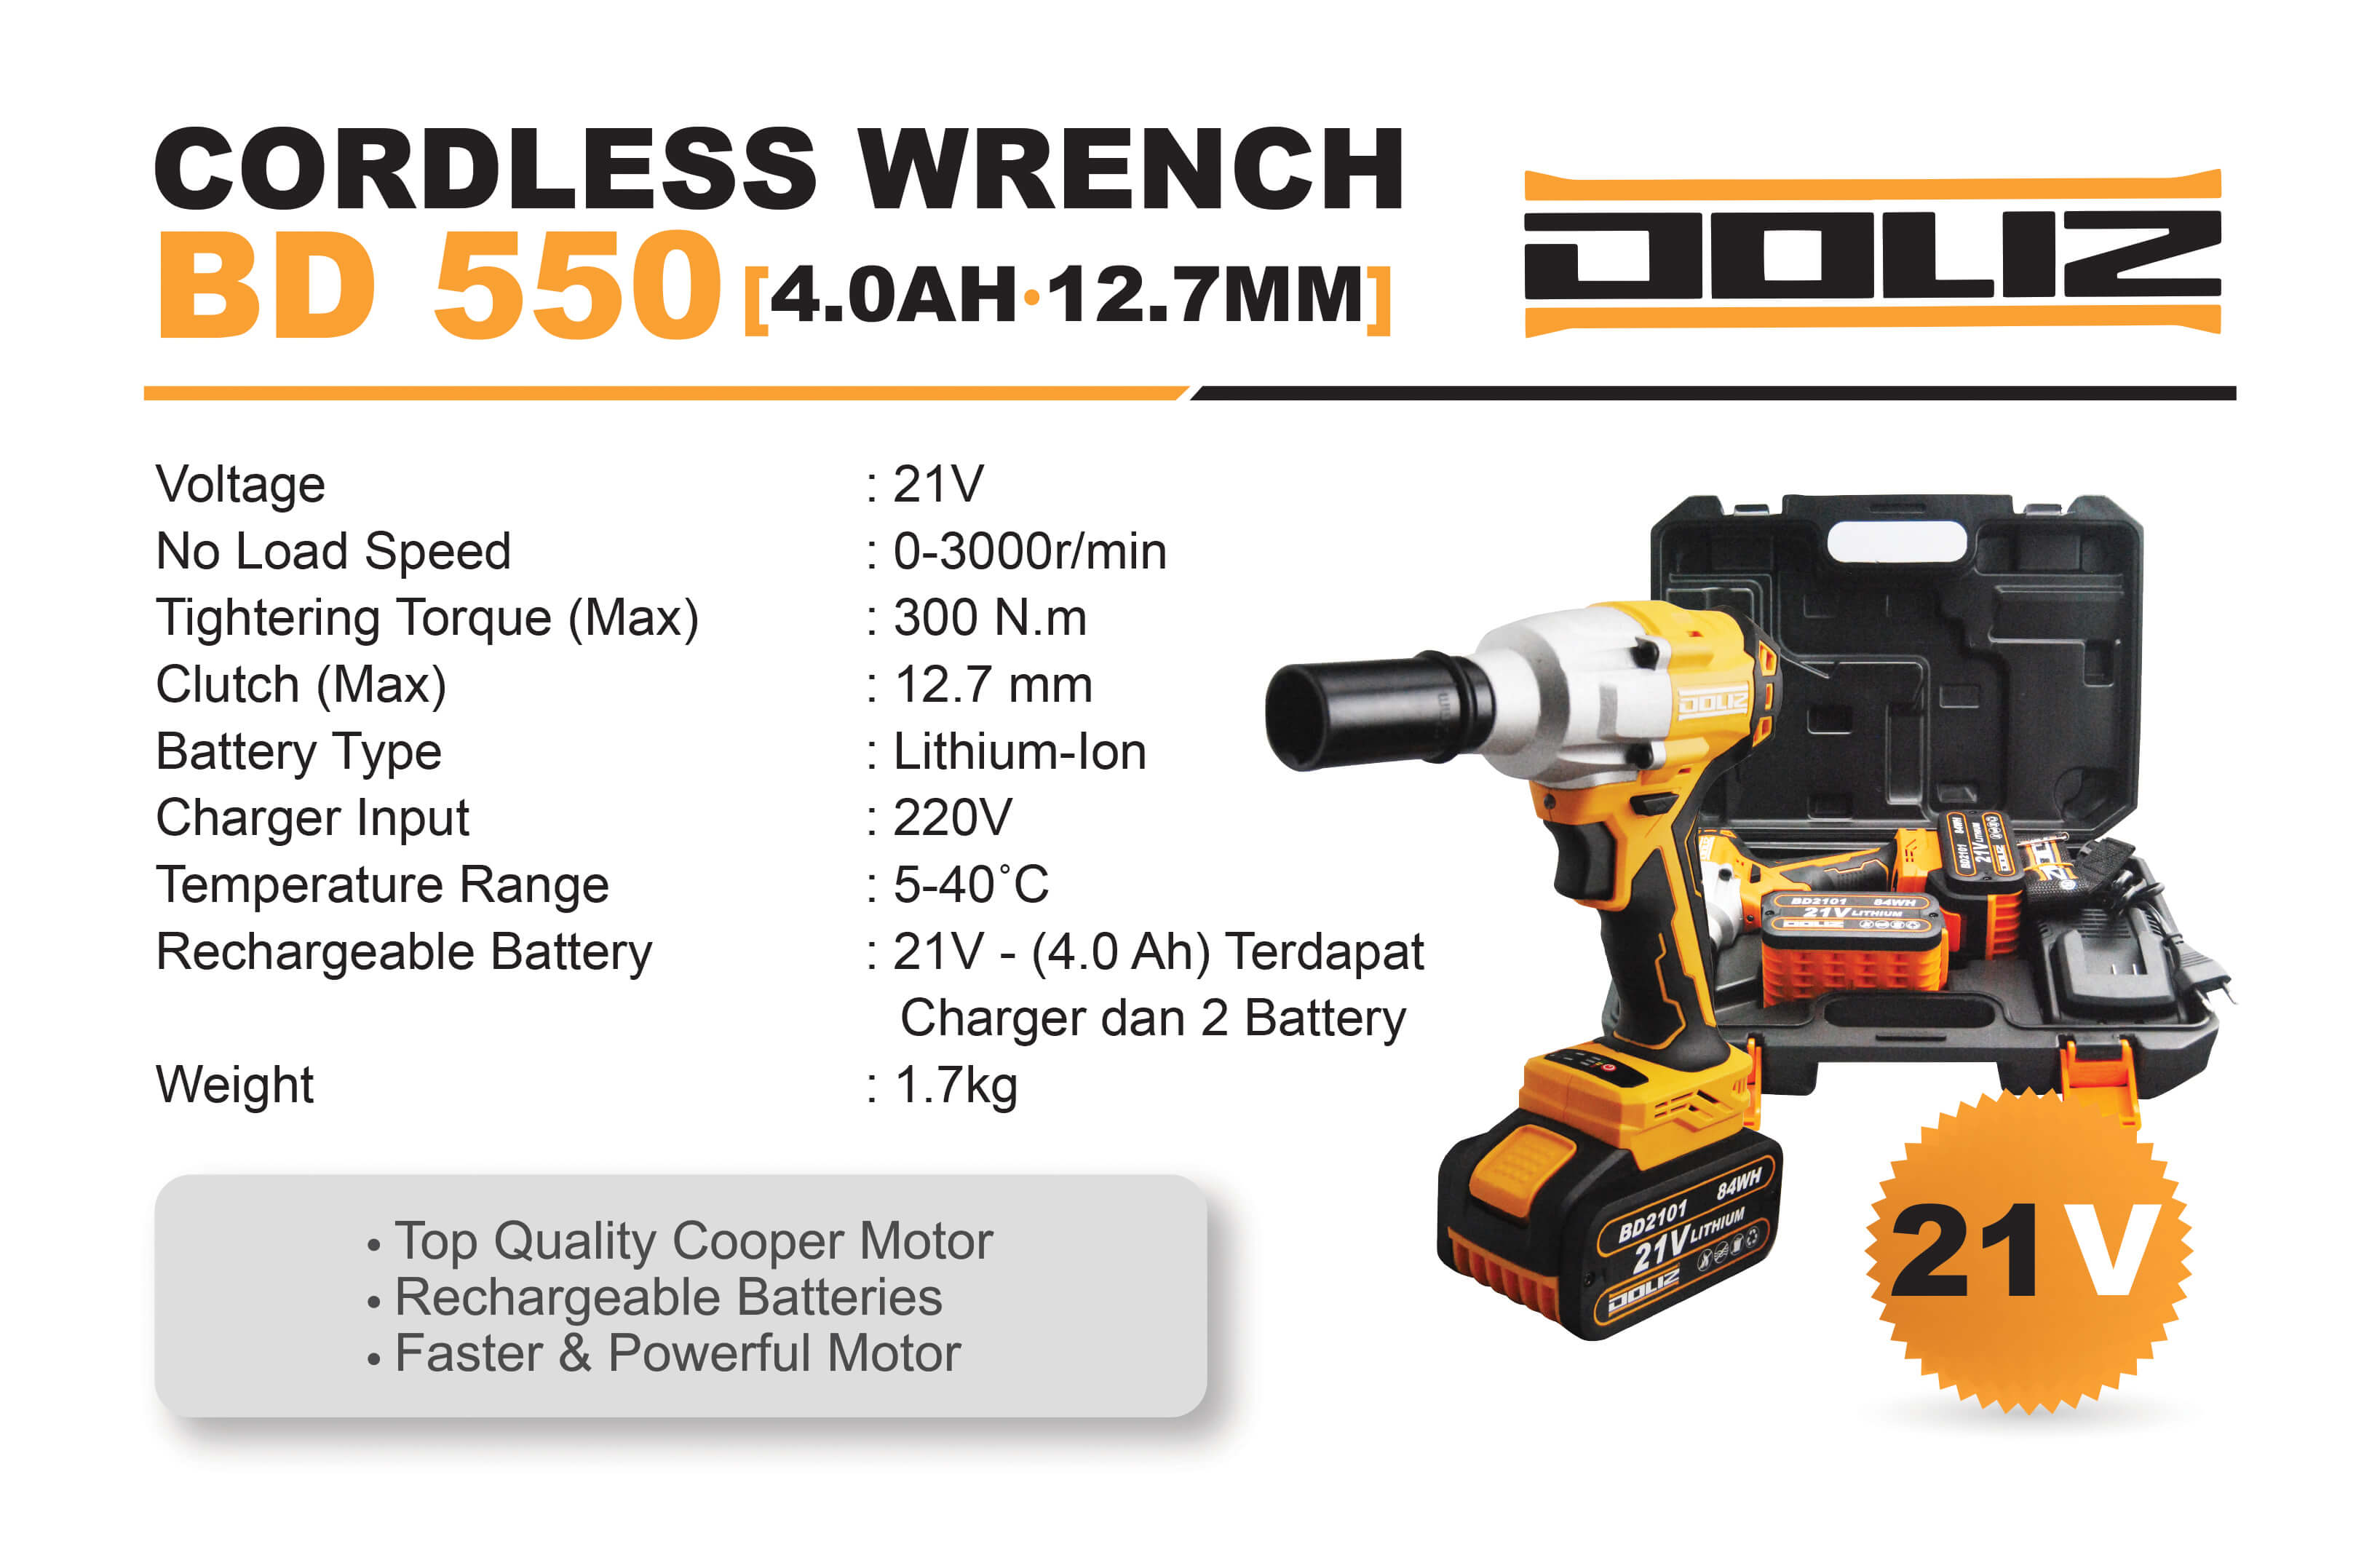 Doliz cordless wrench series BD 550